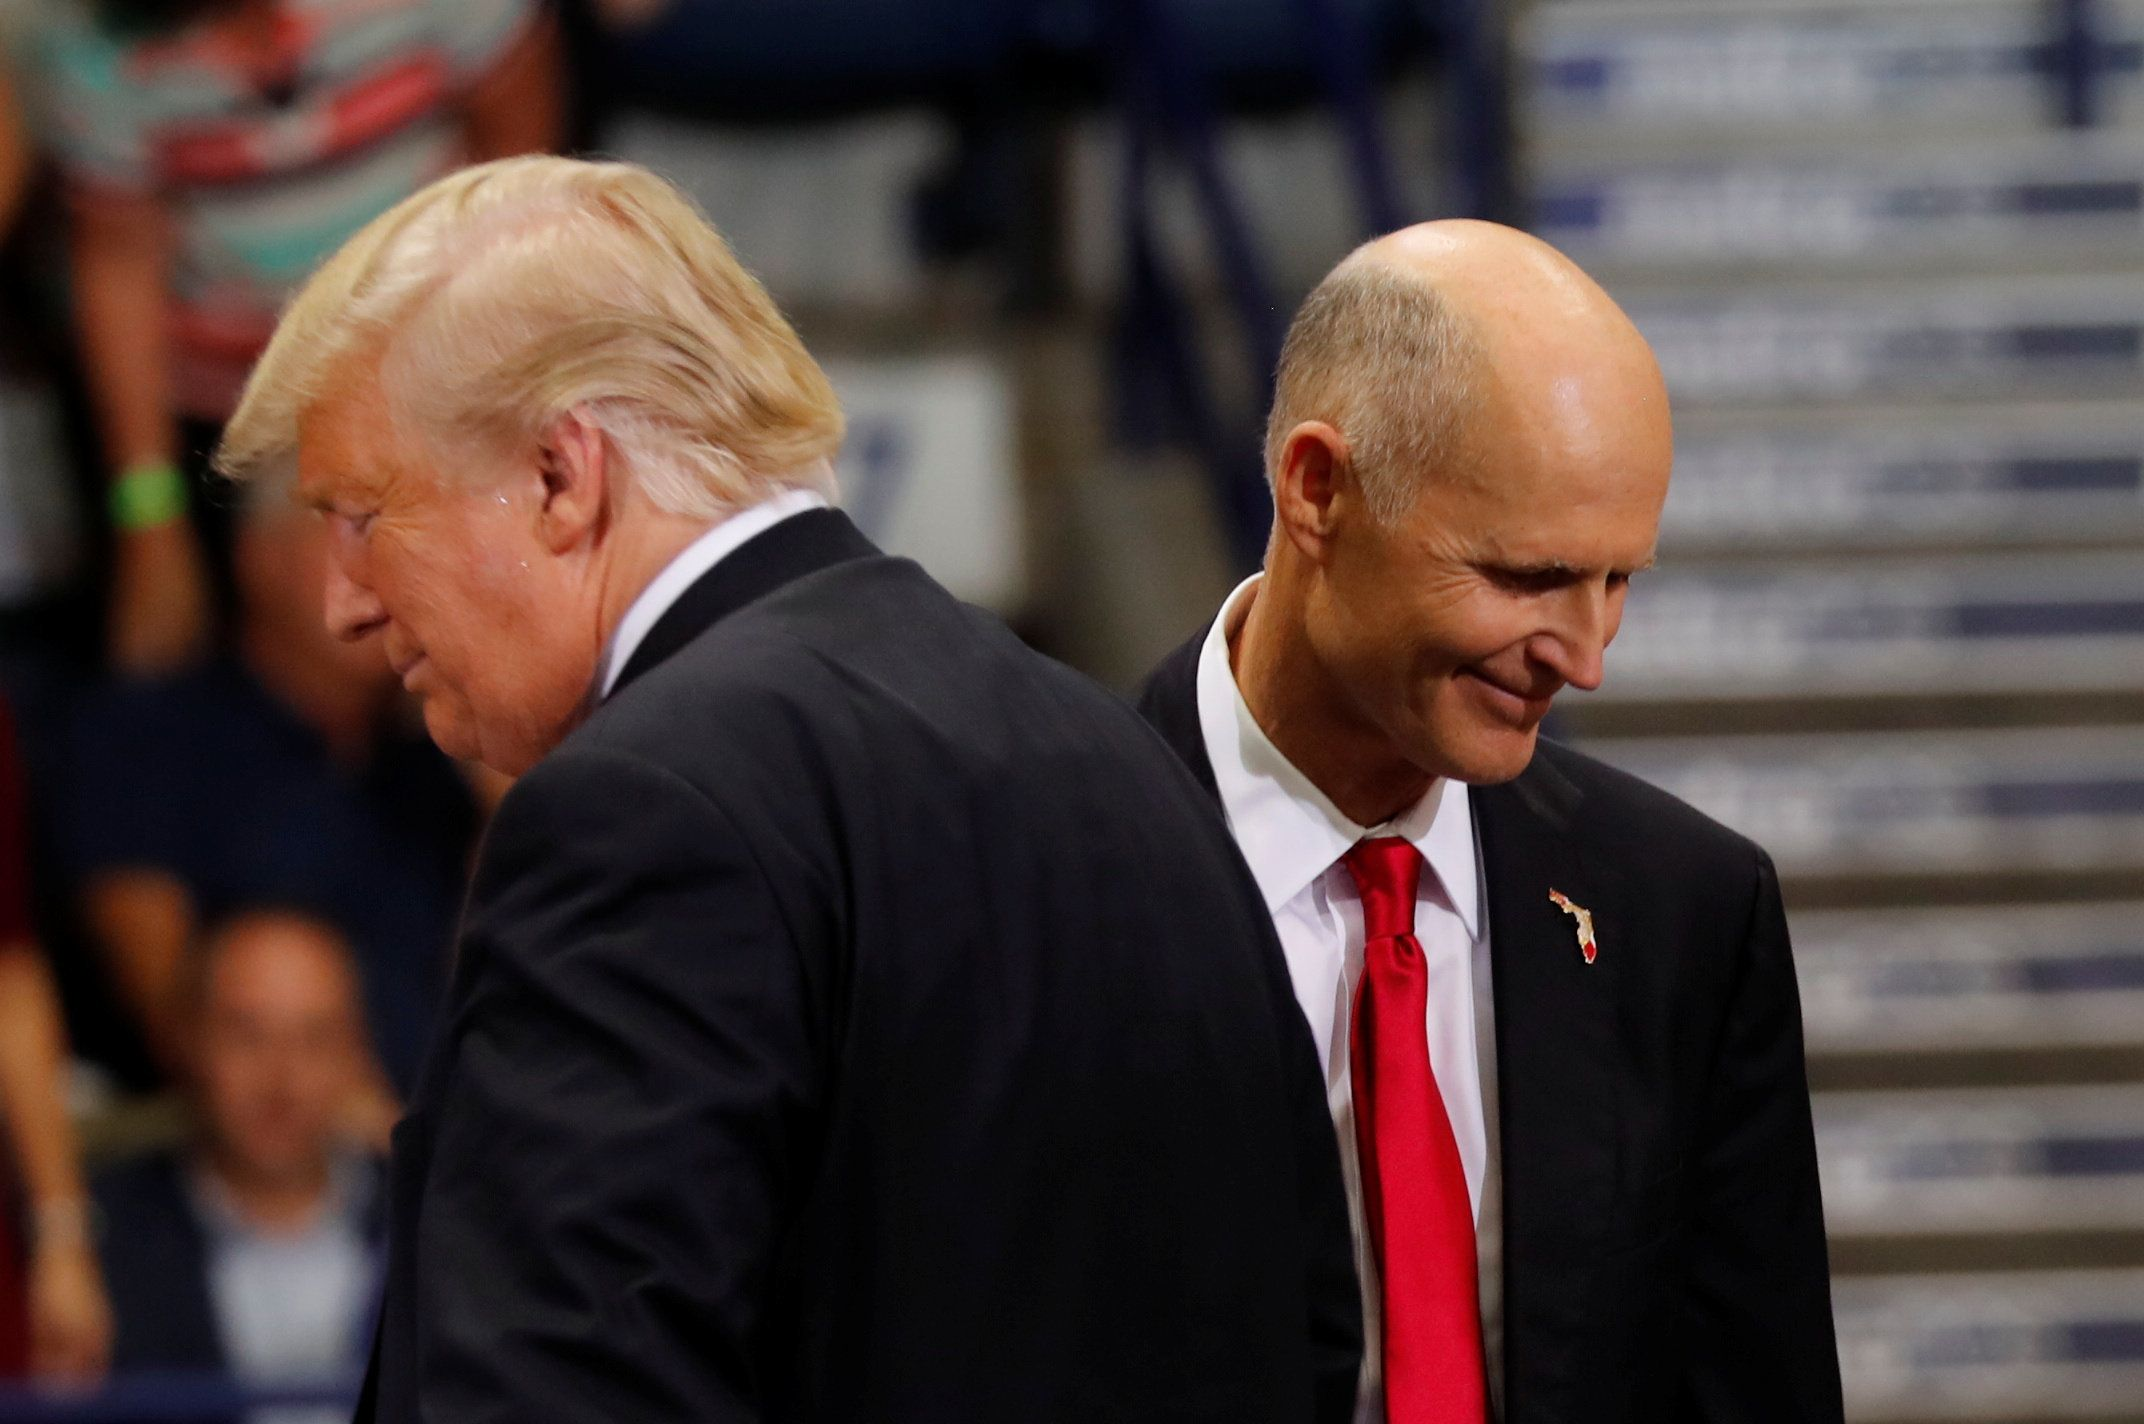 The GOP Is Casting Doubt On Normal Election Processes For The Sake Of Winning